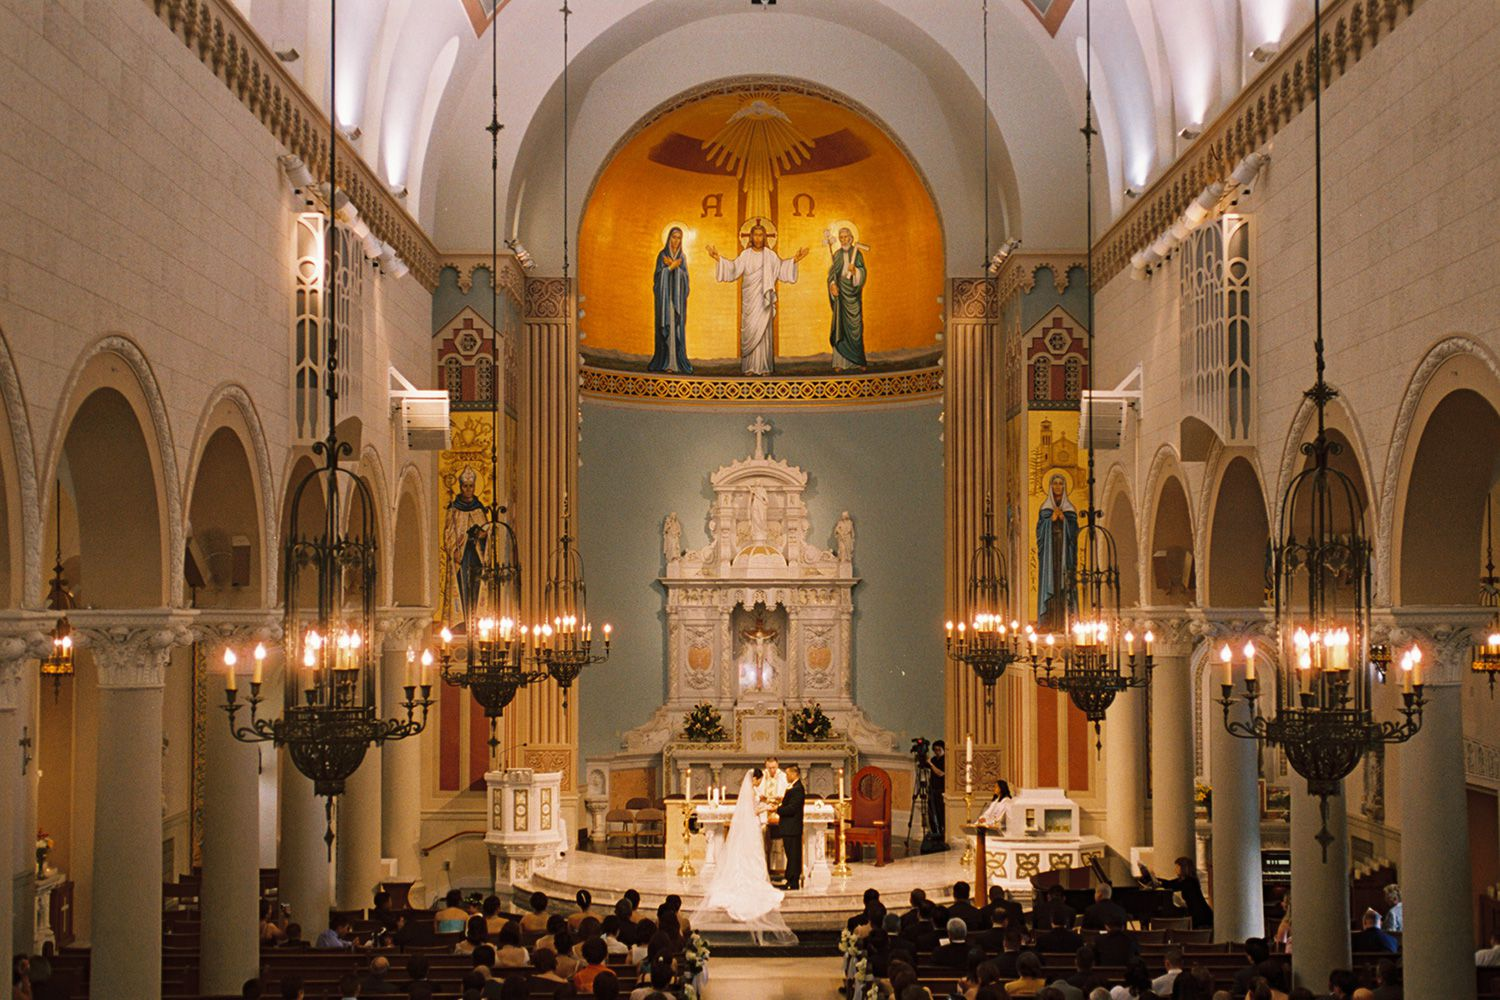 Getting Married In The Catholic Church: What's Required?